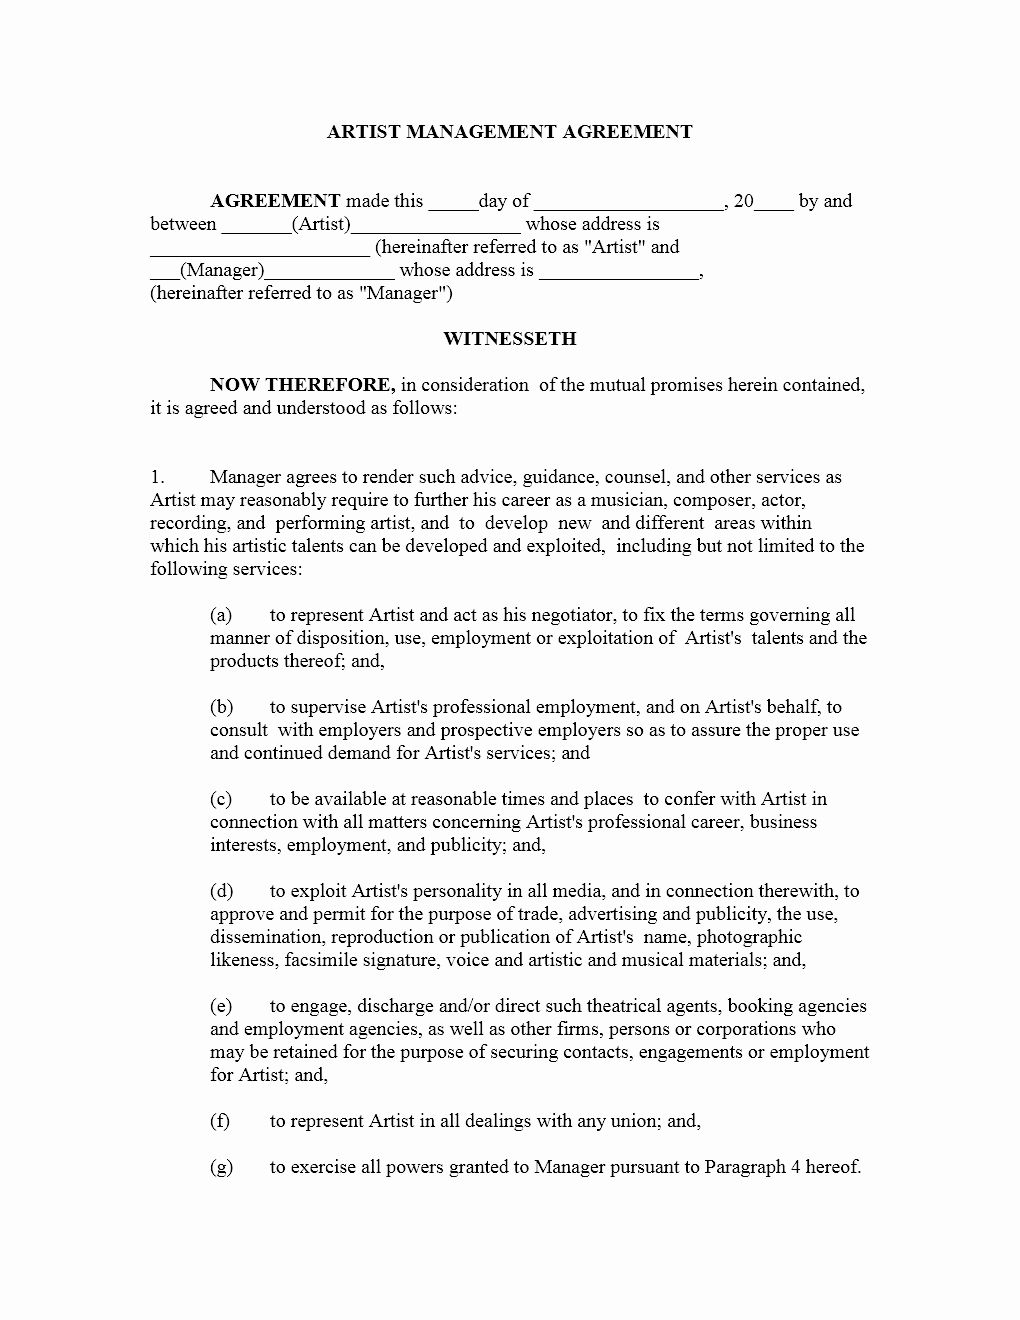 Artist Management Contract Template in 2020 Contract